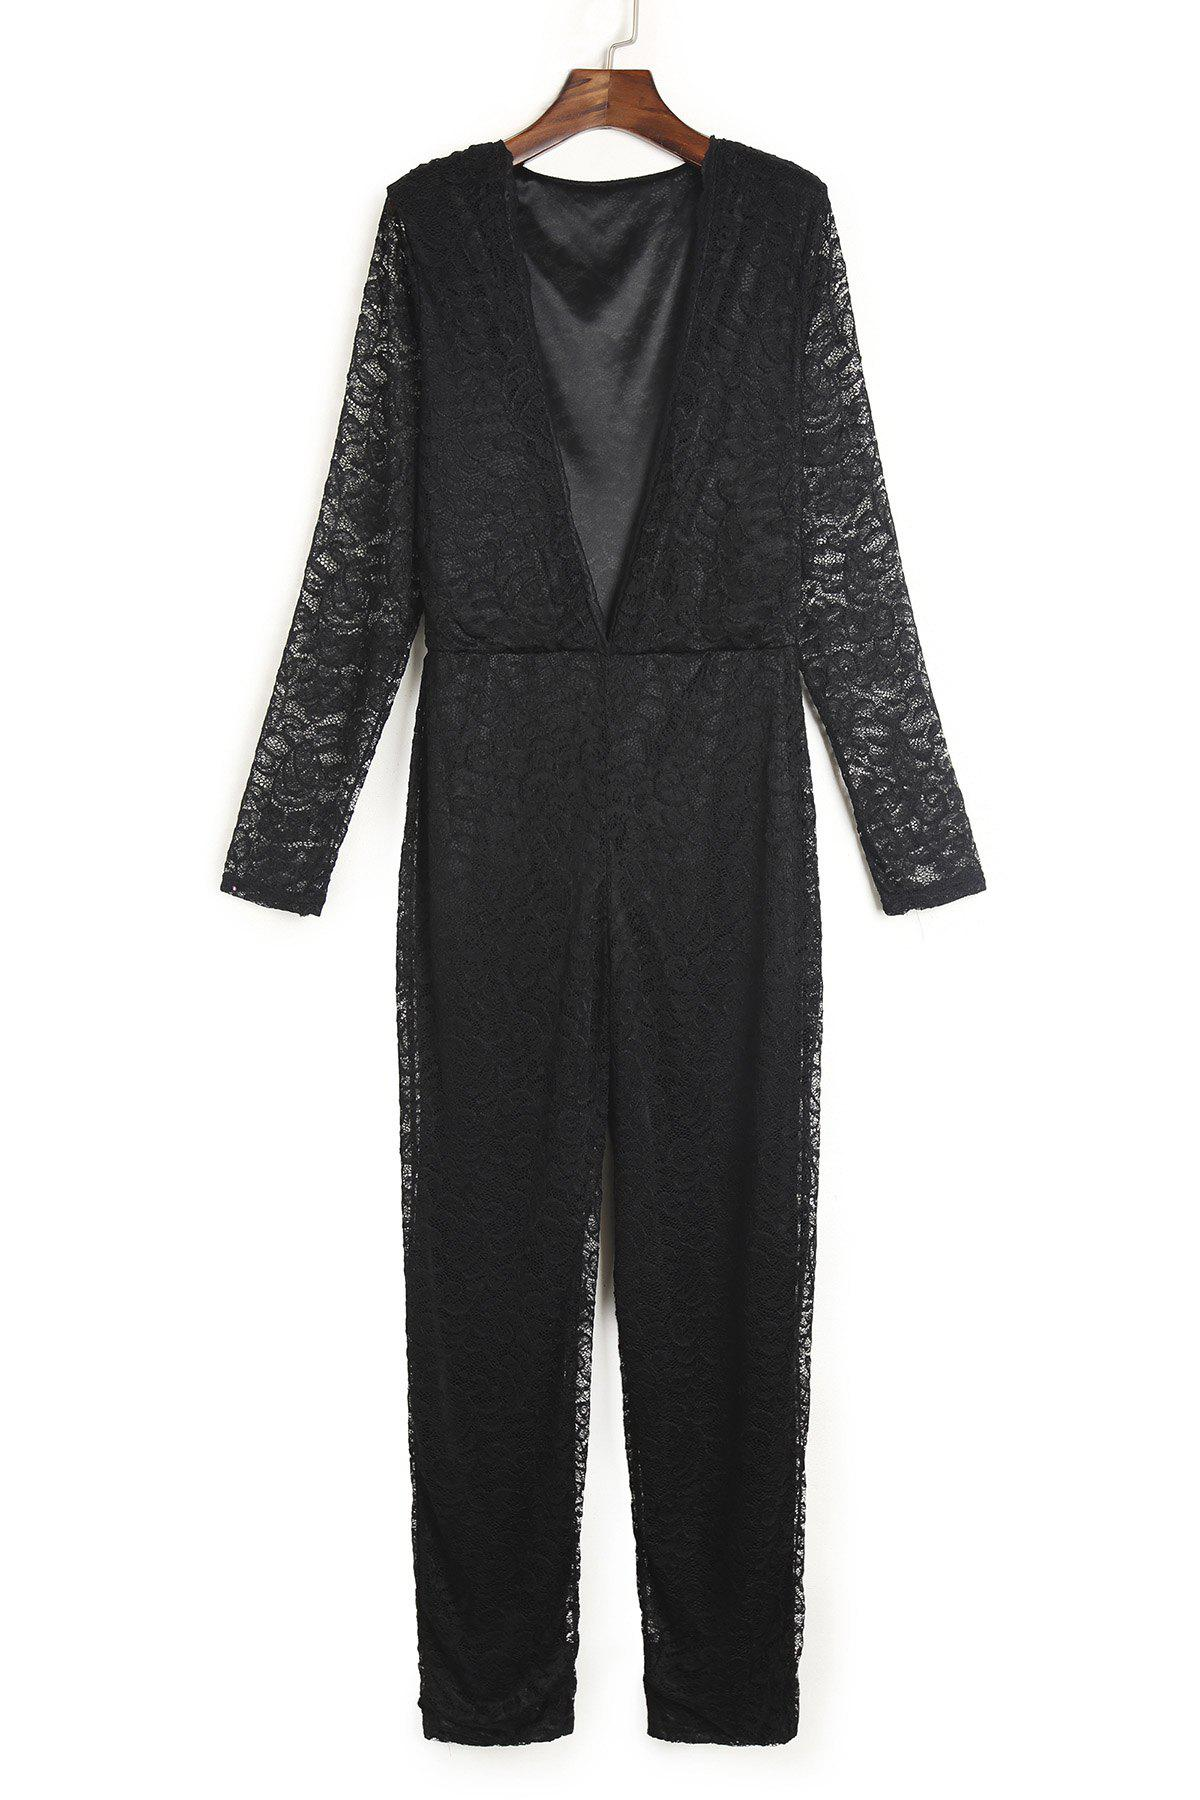 Trendy Plunging Neck Hollow Out See-Through Black Lace Jumpsuit For Women